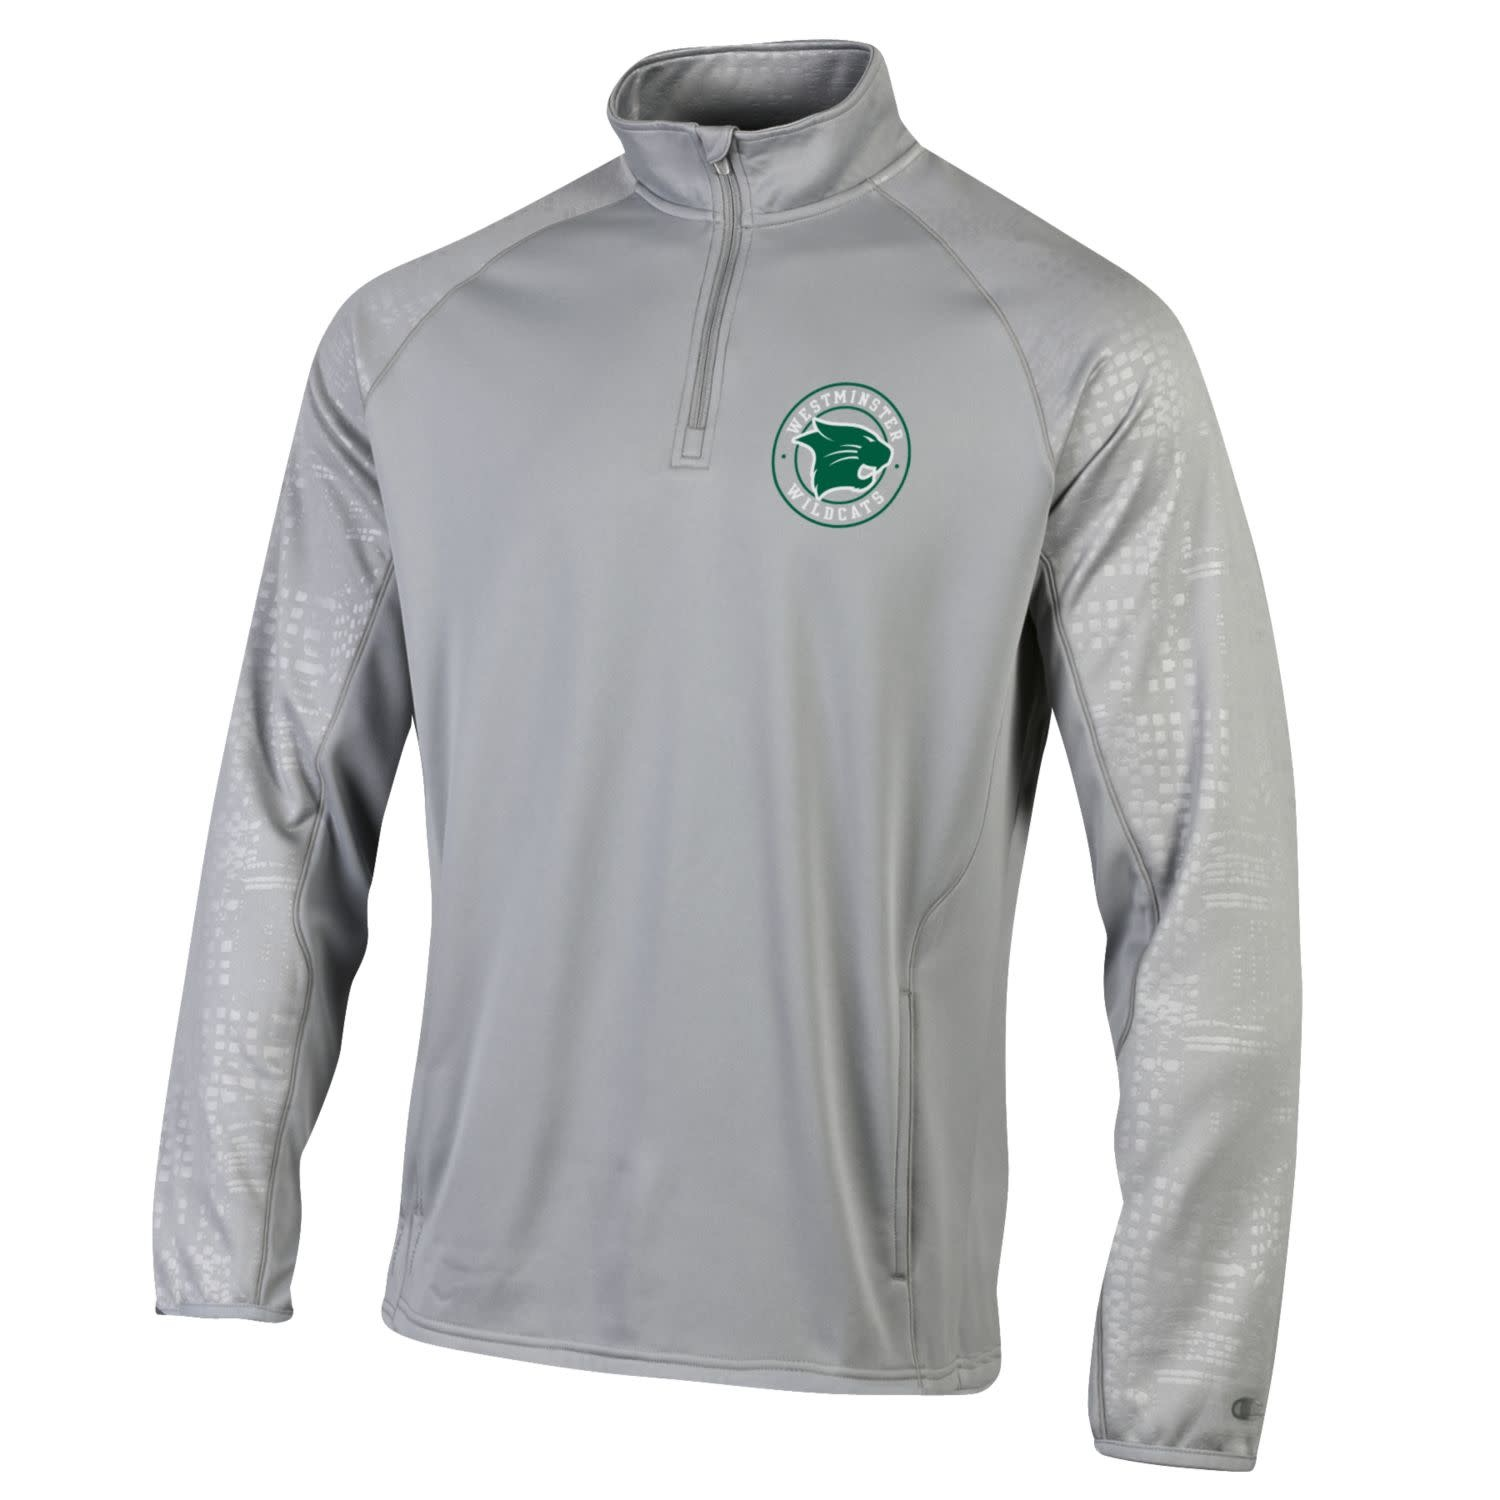 Champion Pullover: Champion 1/4 Zip Powertrain Gray with Logo in Circle